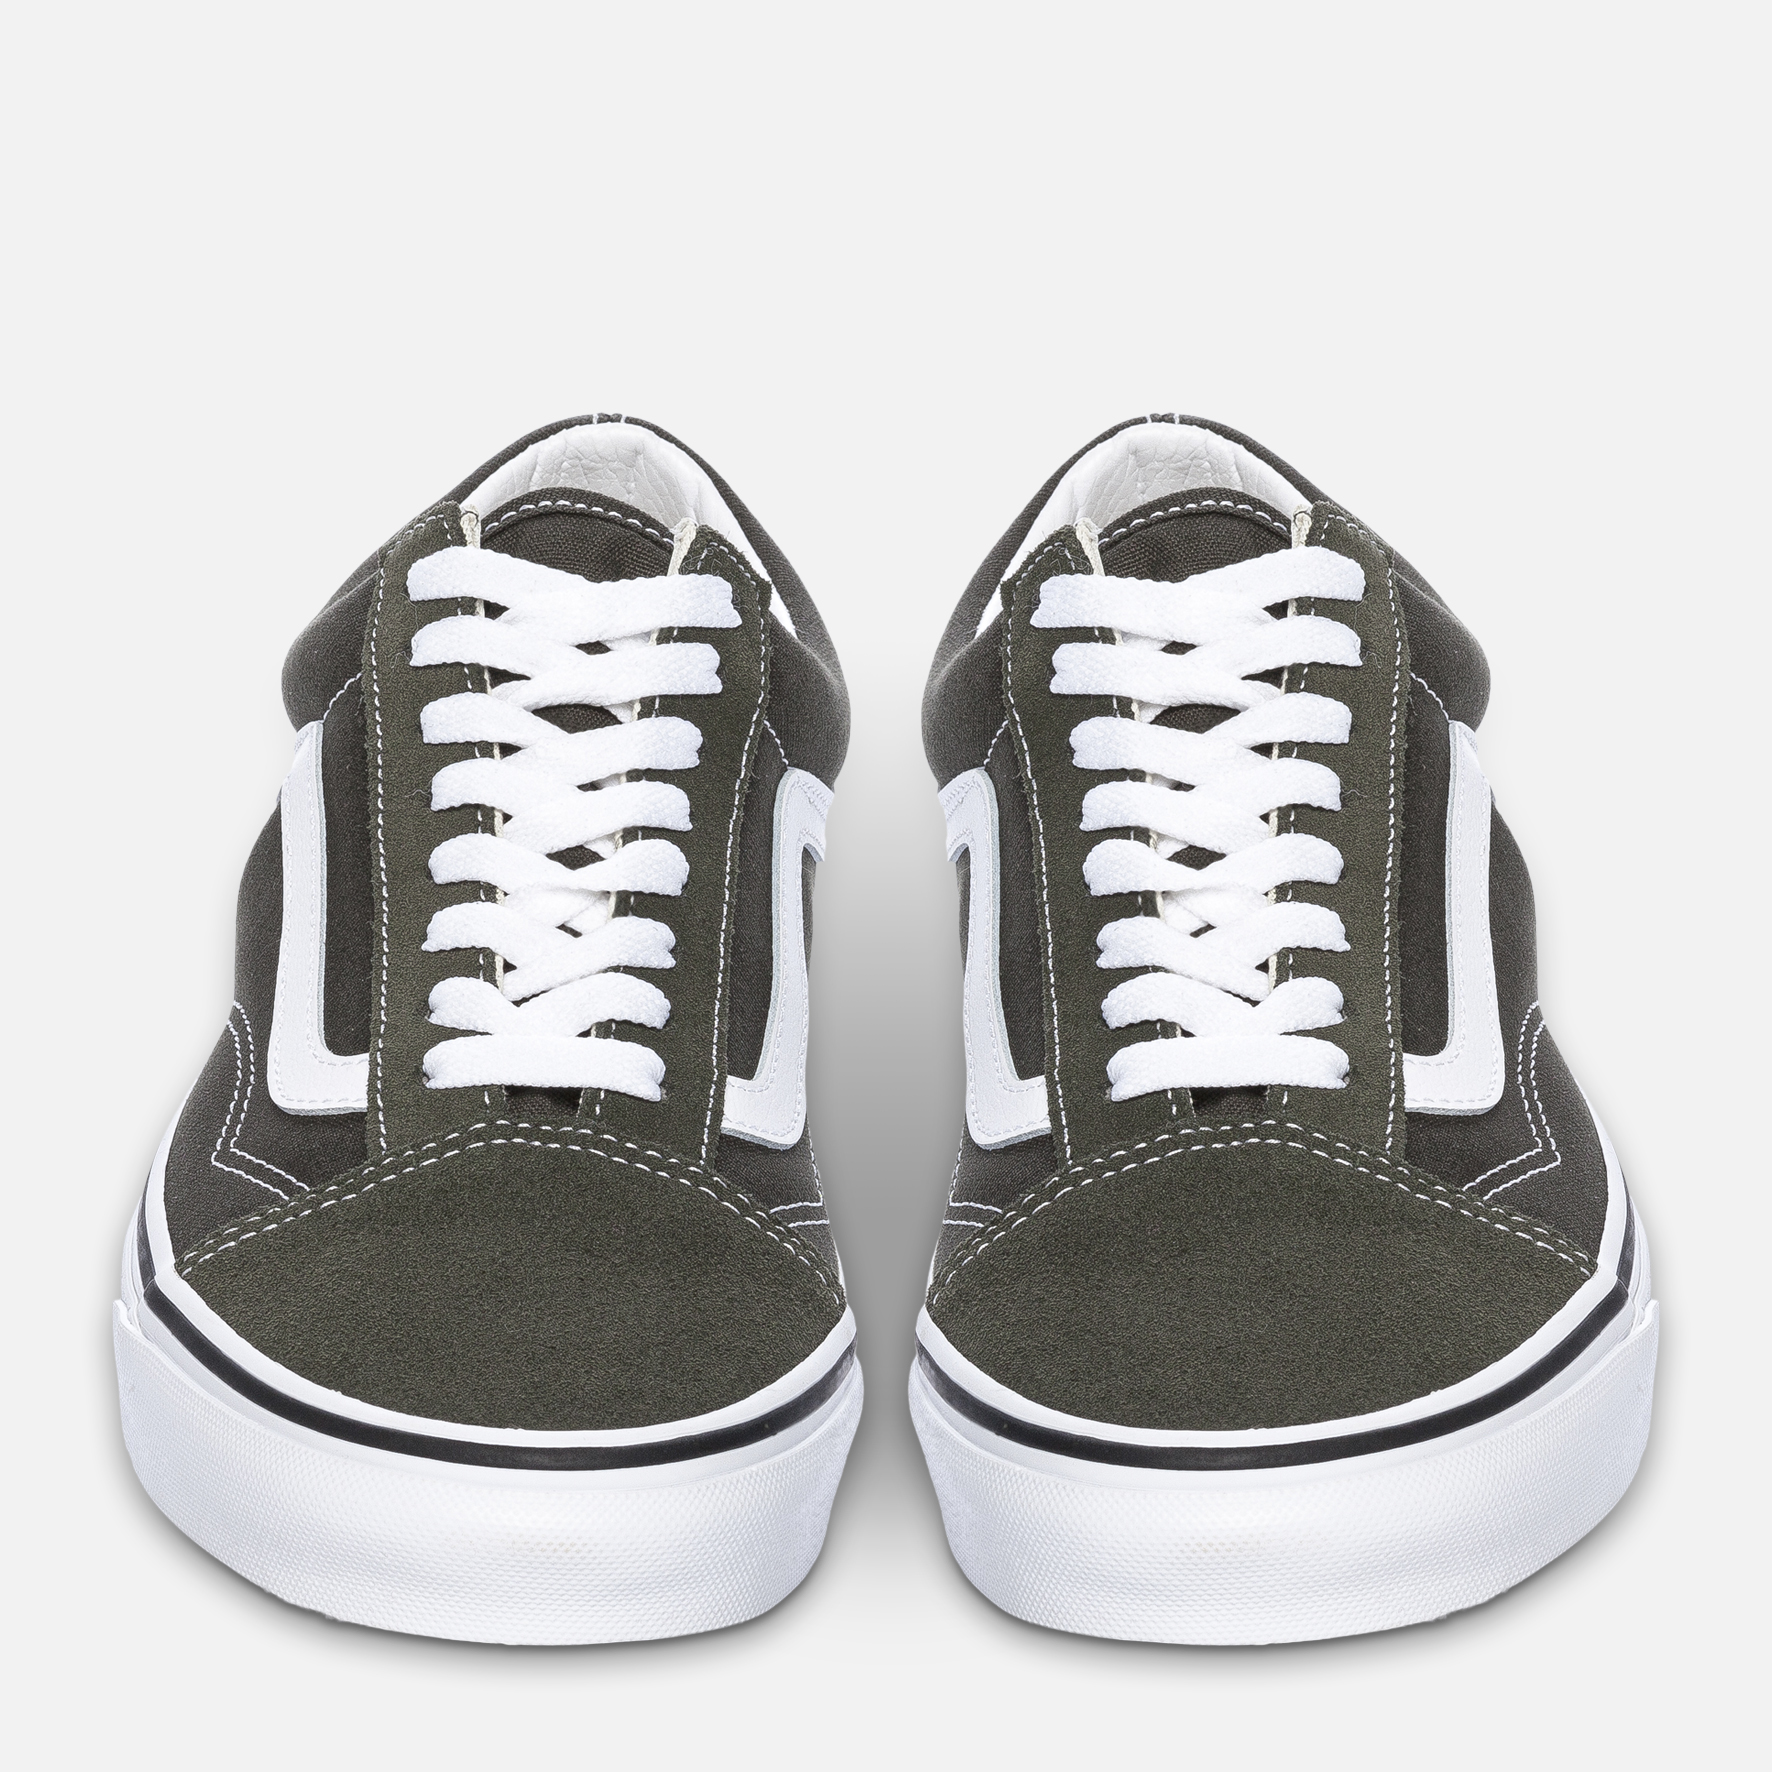 Dr martens, Junior league, Treksta og Vans sneakers low